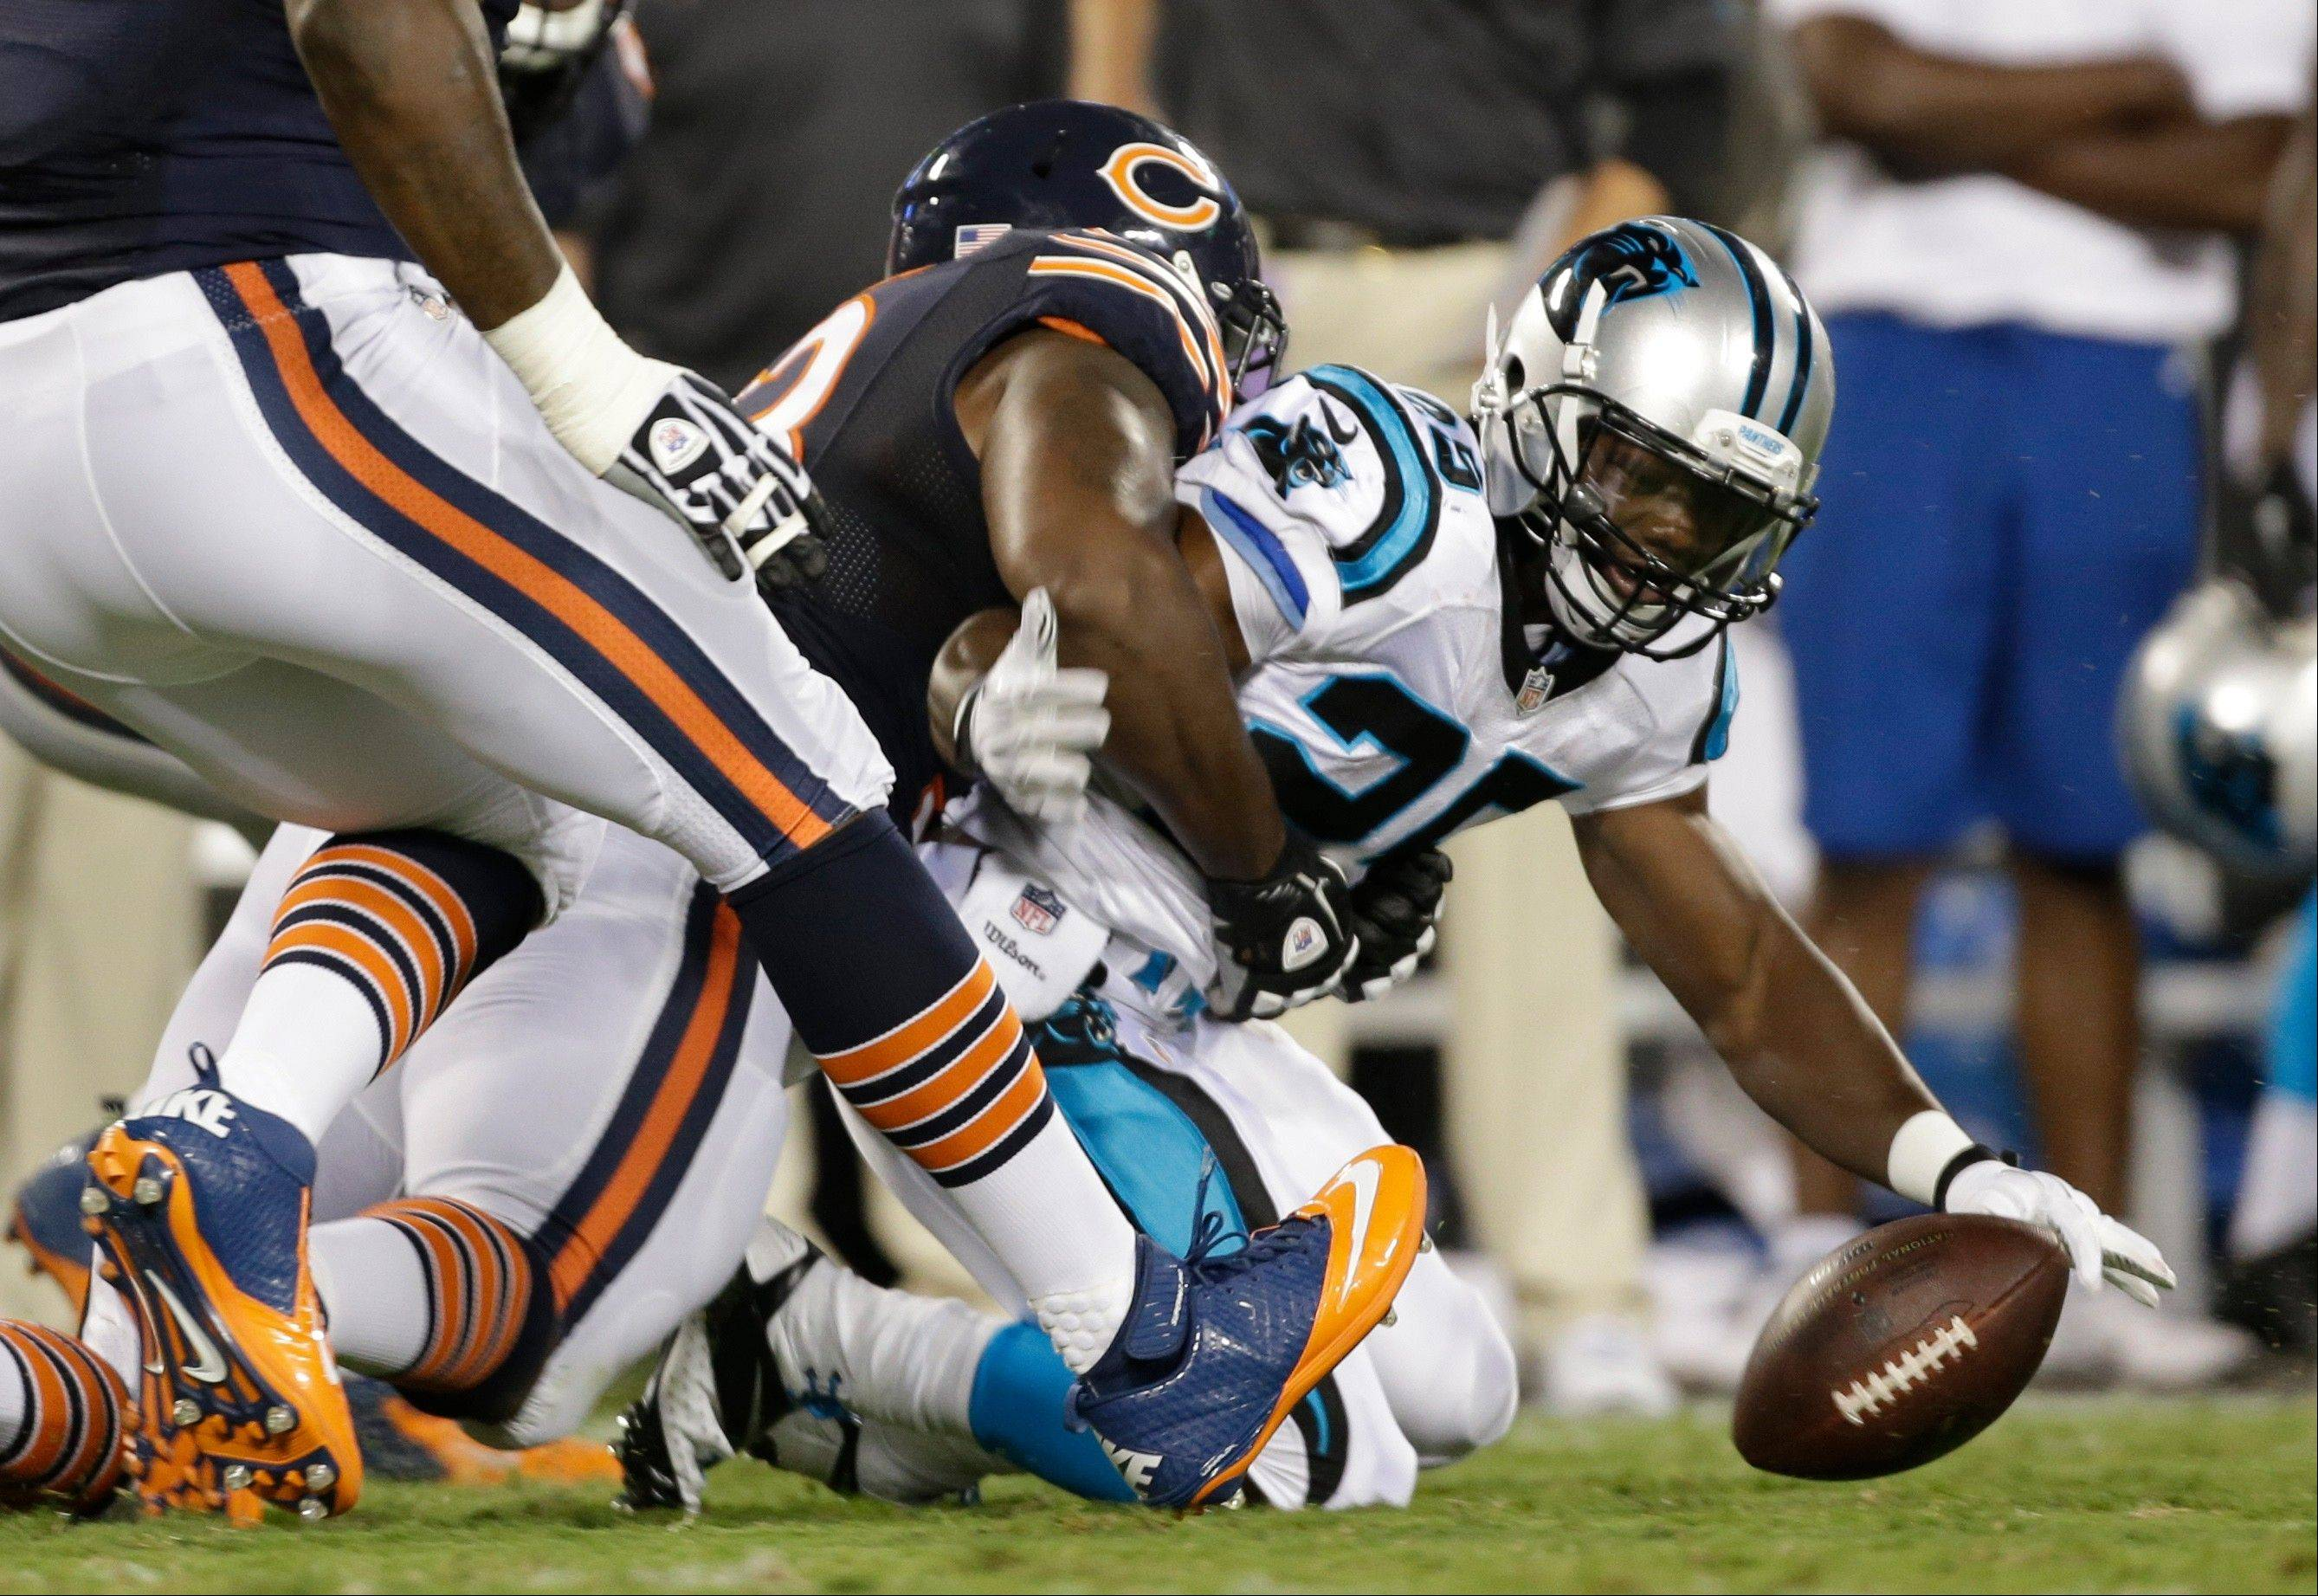 Carolina Panthers' Kenjon Barner, right, fumbles the ball after being hit by Chicago Bears' Nate Collins, left, during the first half of a preseason NFL football game in Charlotte, N.C., Friday, Aug. 9, 2013. The Bears recovered the ball.